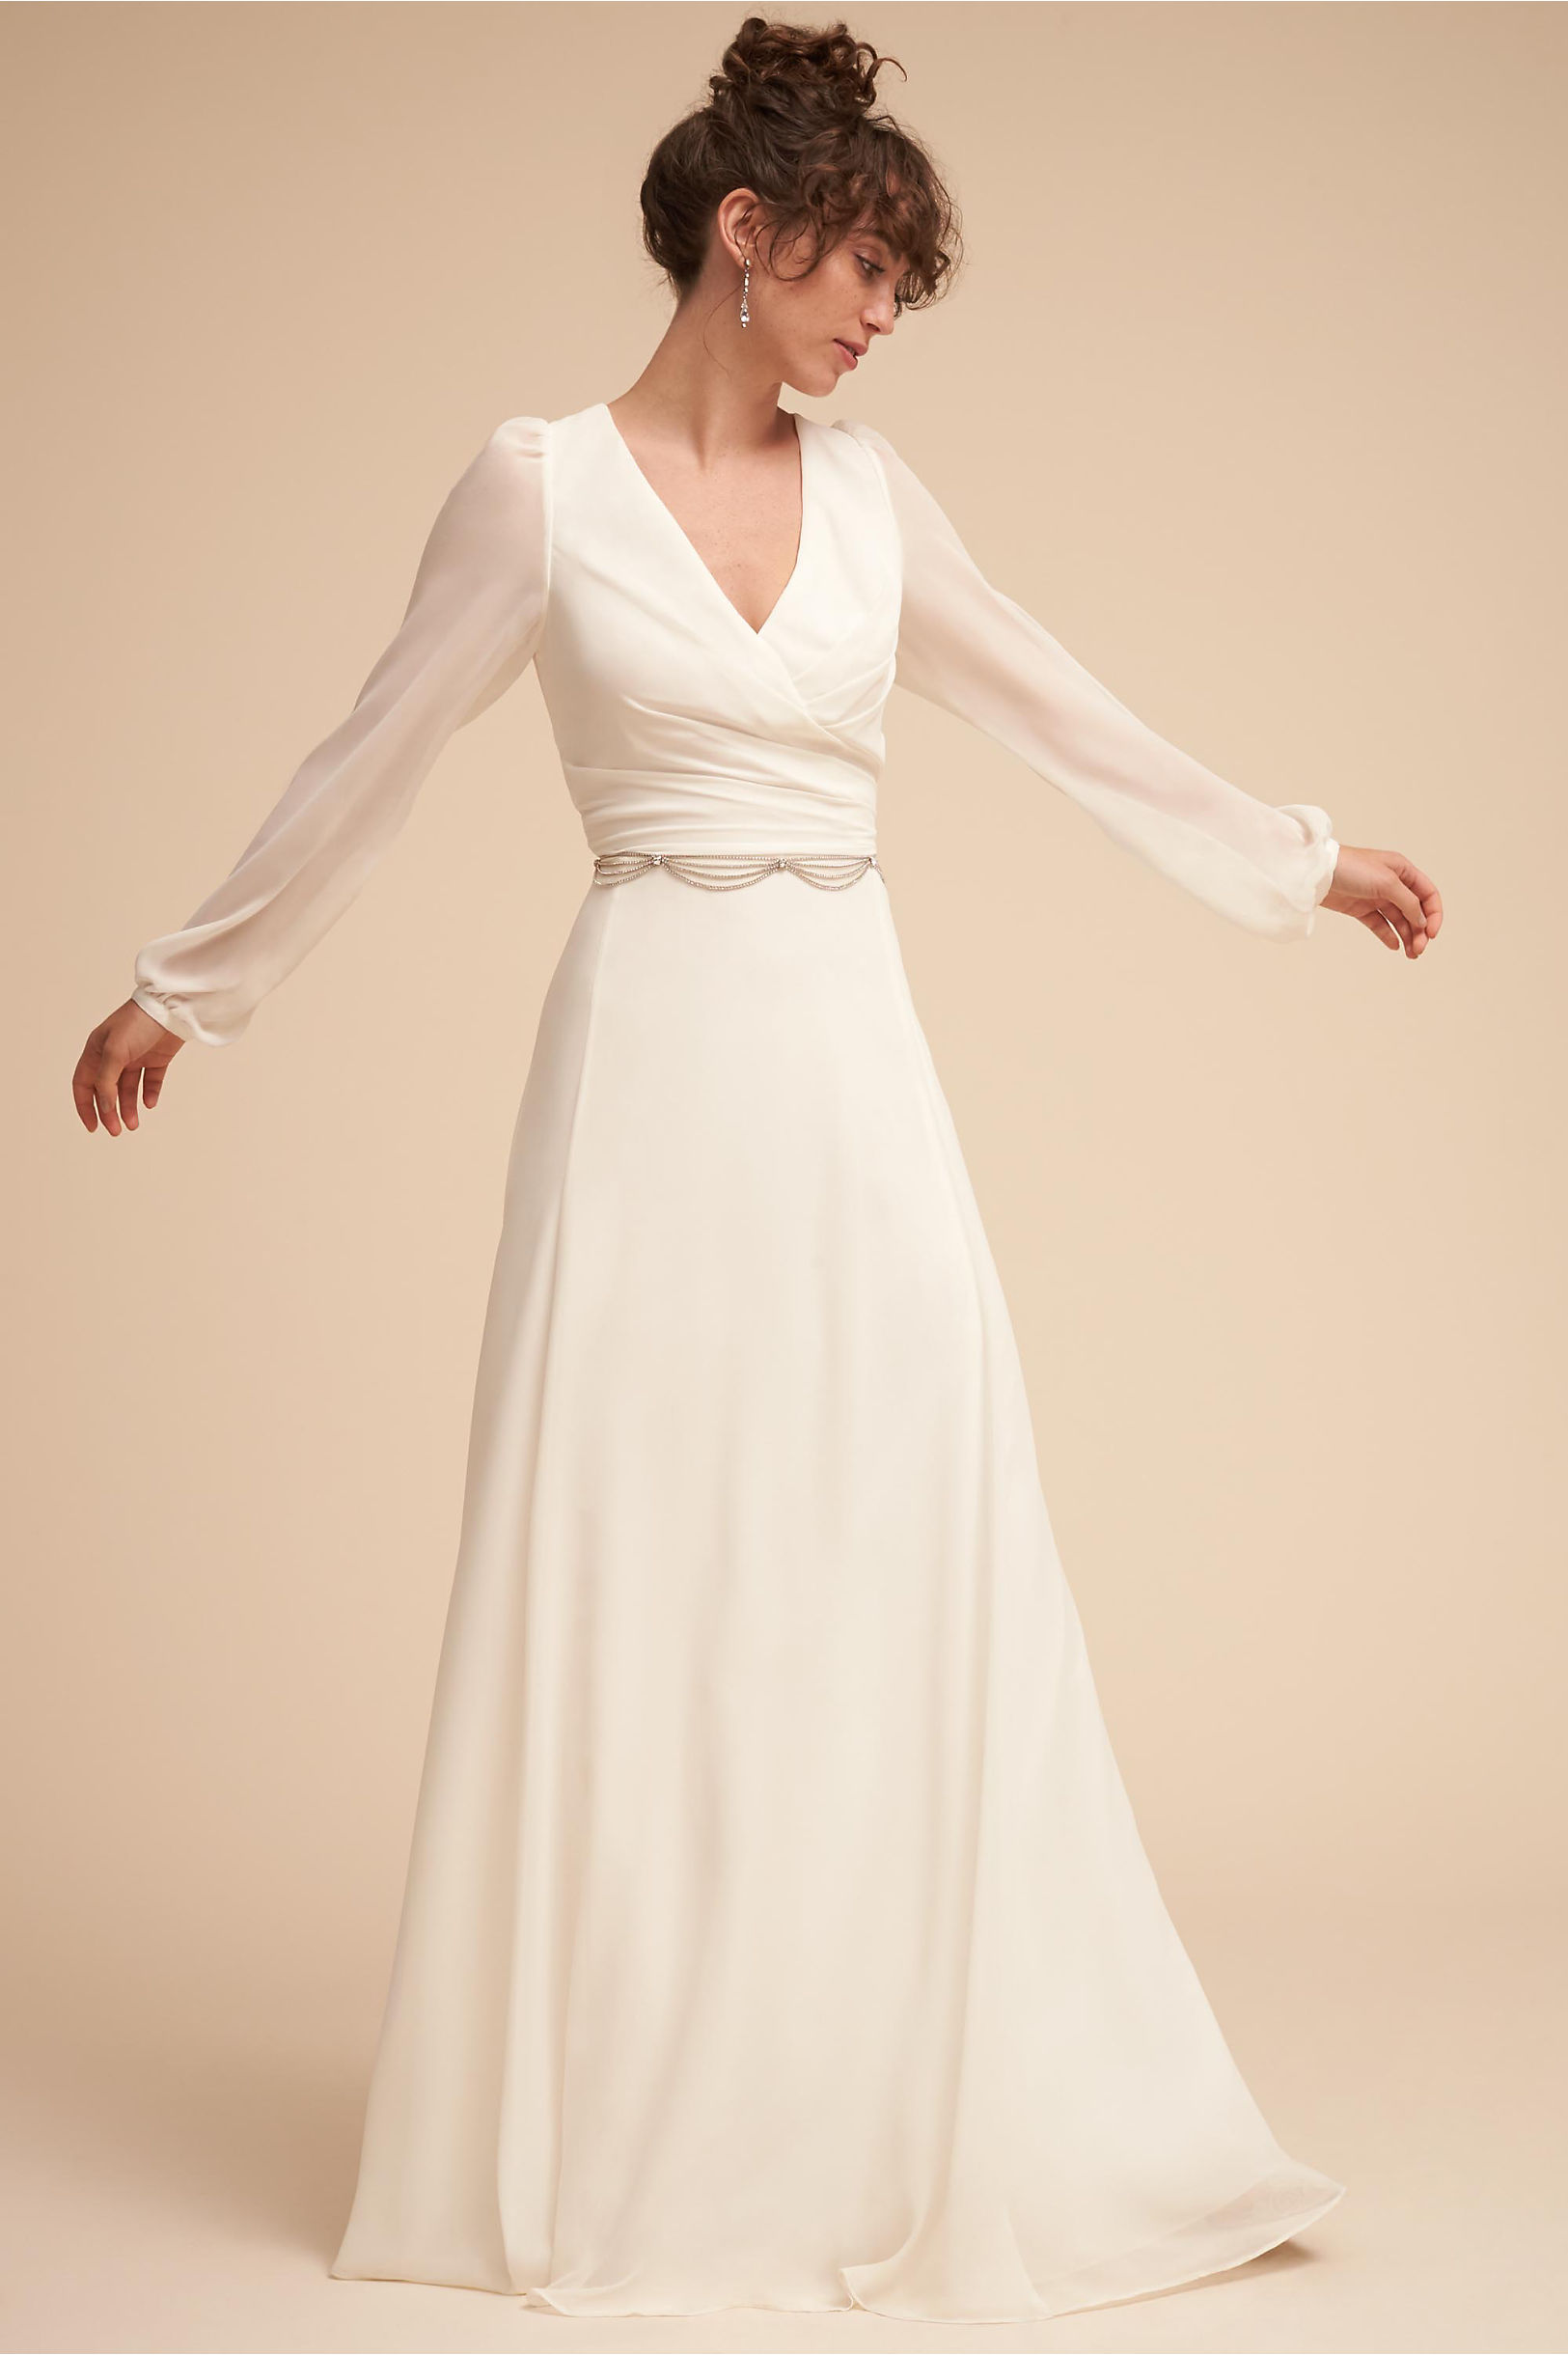 1930s style wedding dresses art deco wedding dress for Simple wedding dresses under 200